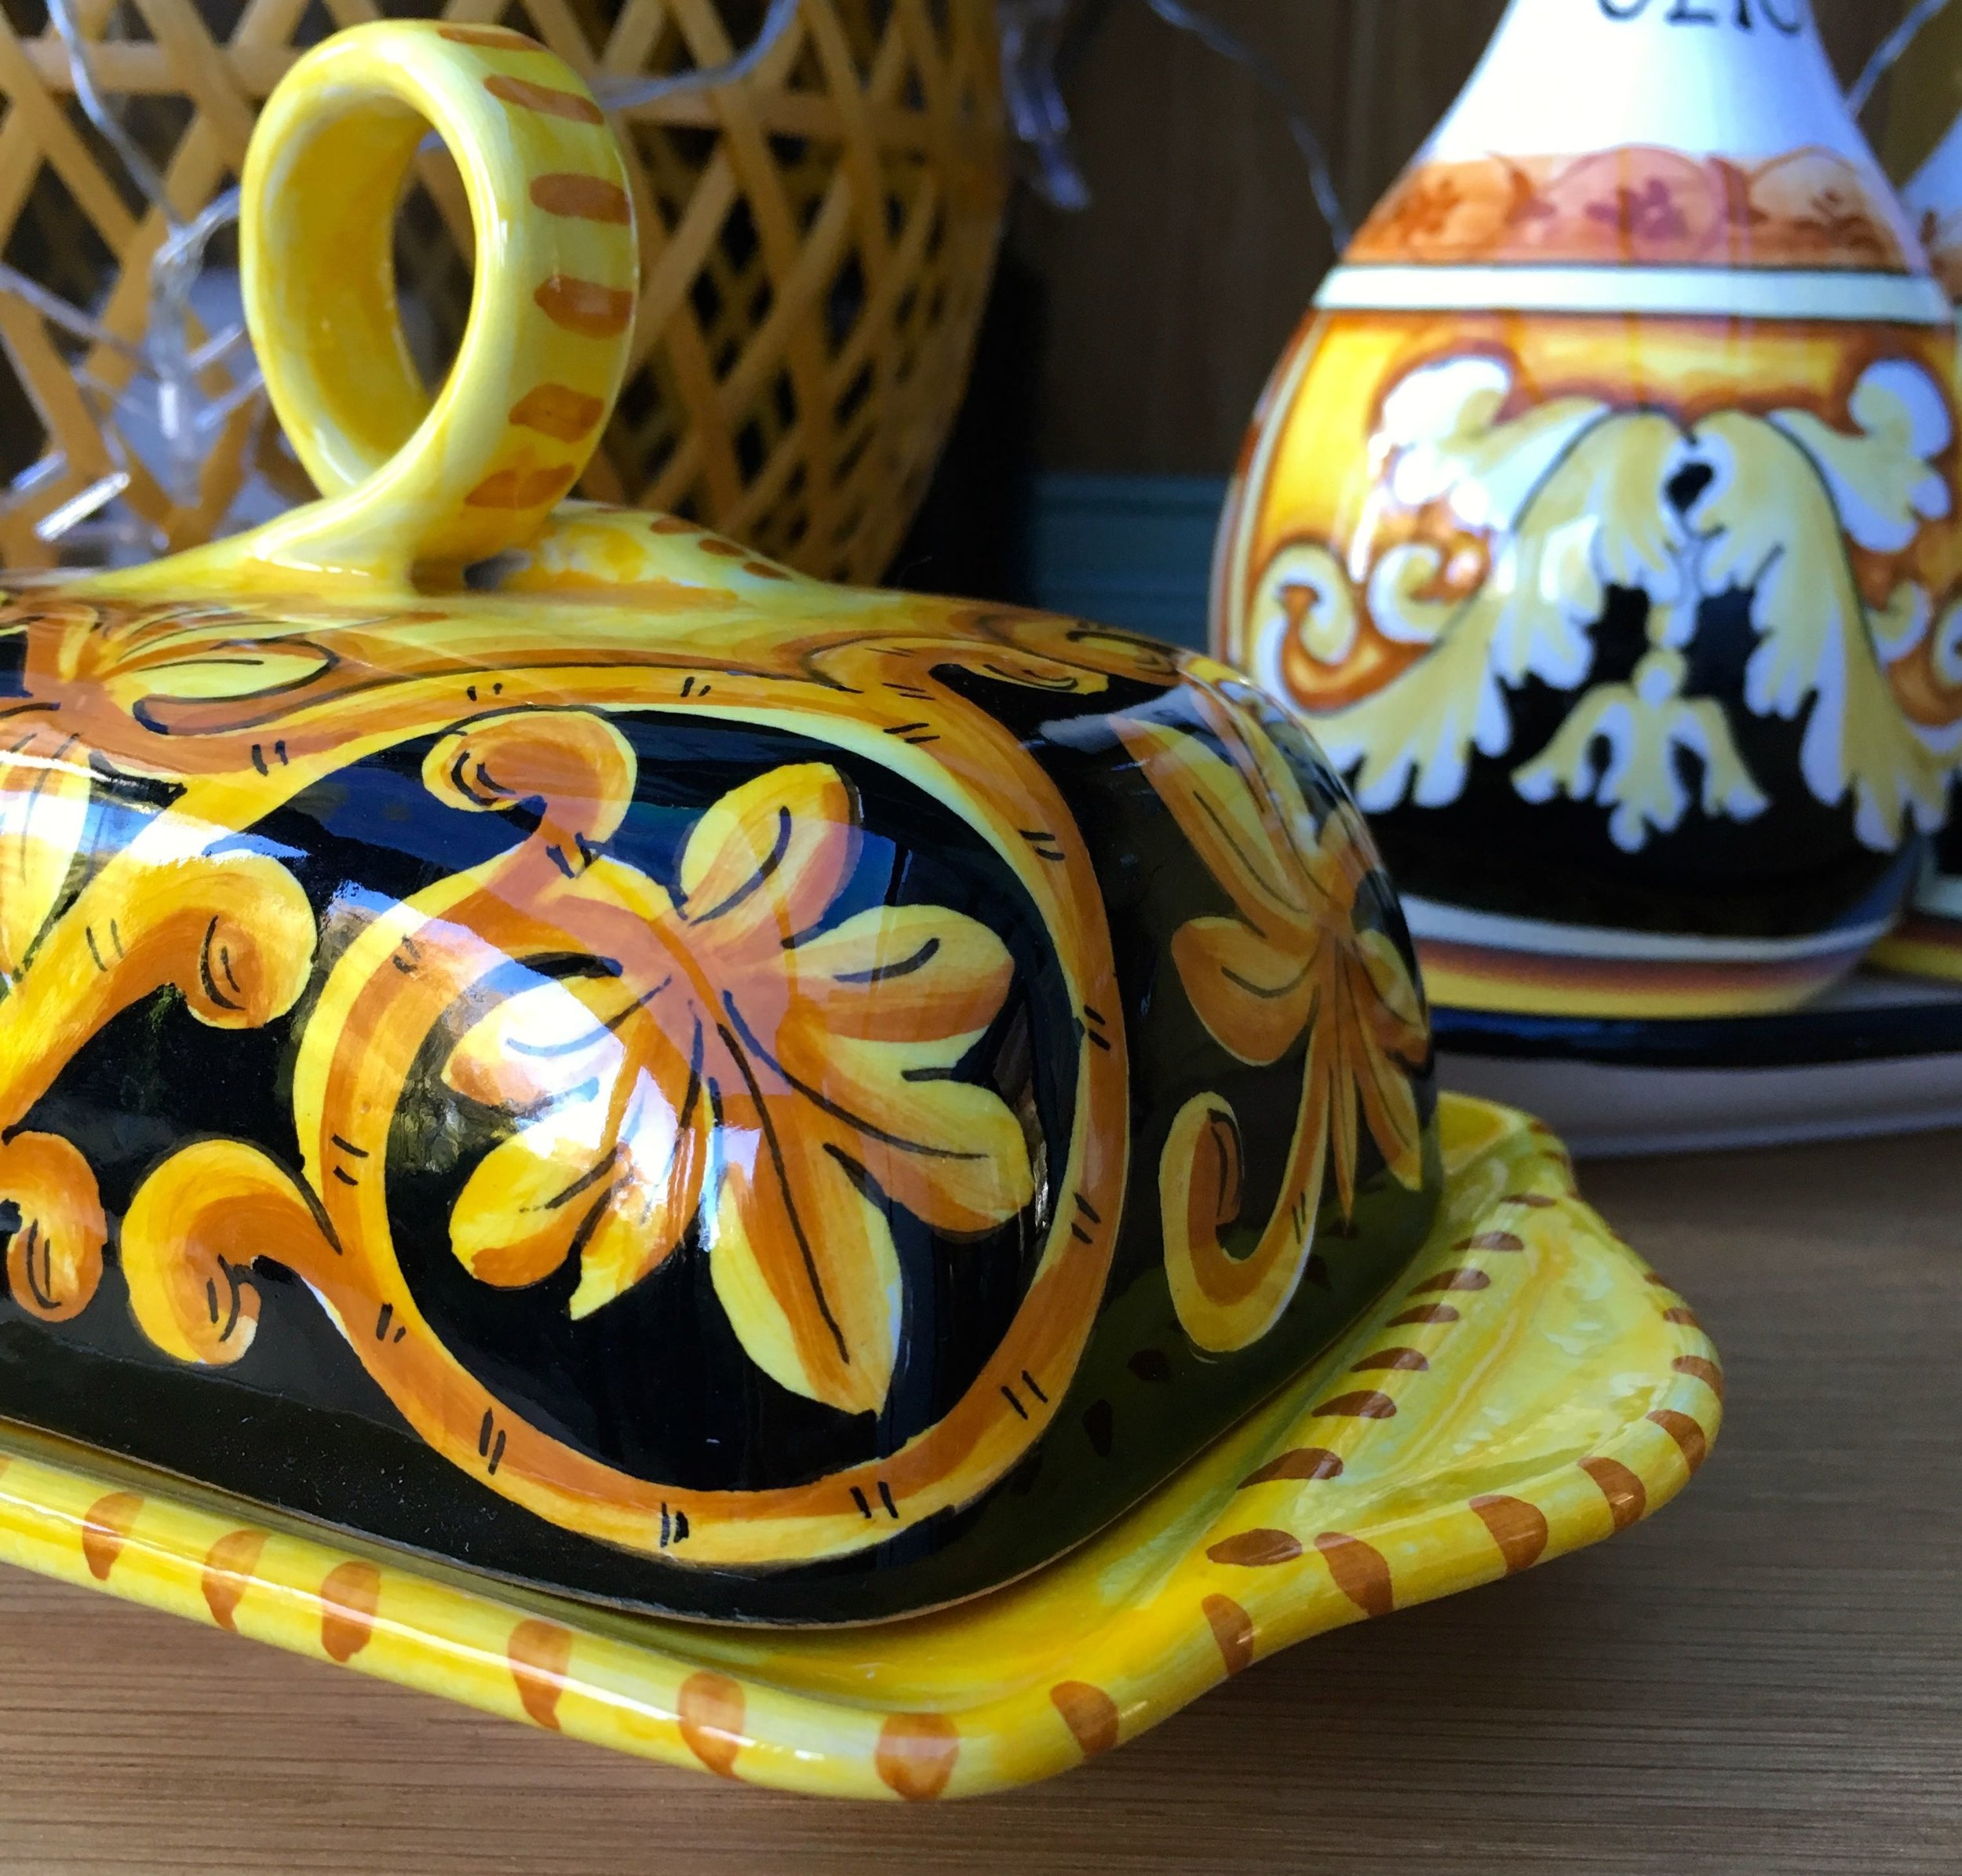 A closer look at my new butter dish